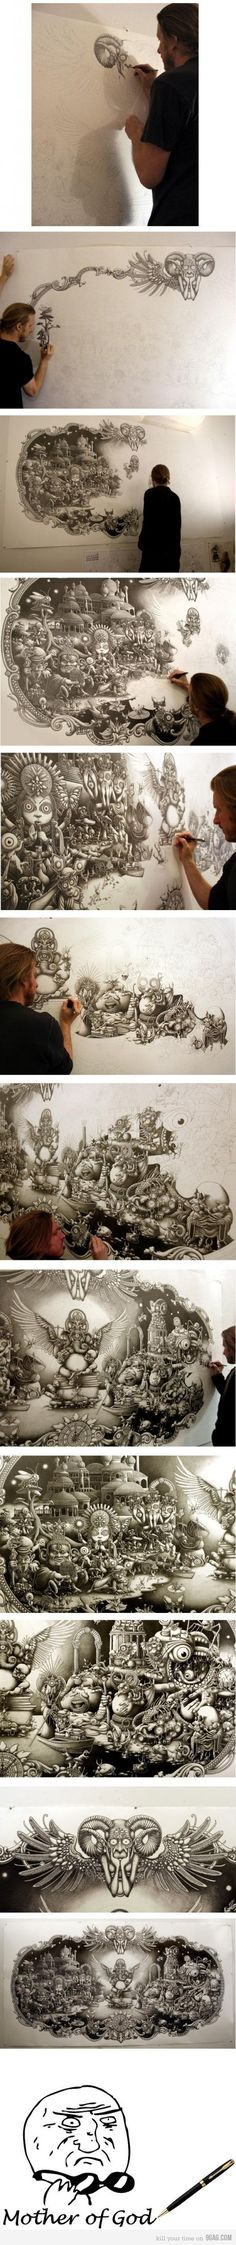 Pen drawing LVL: Over 9000